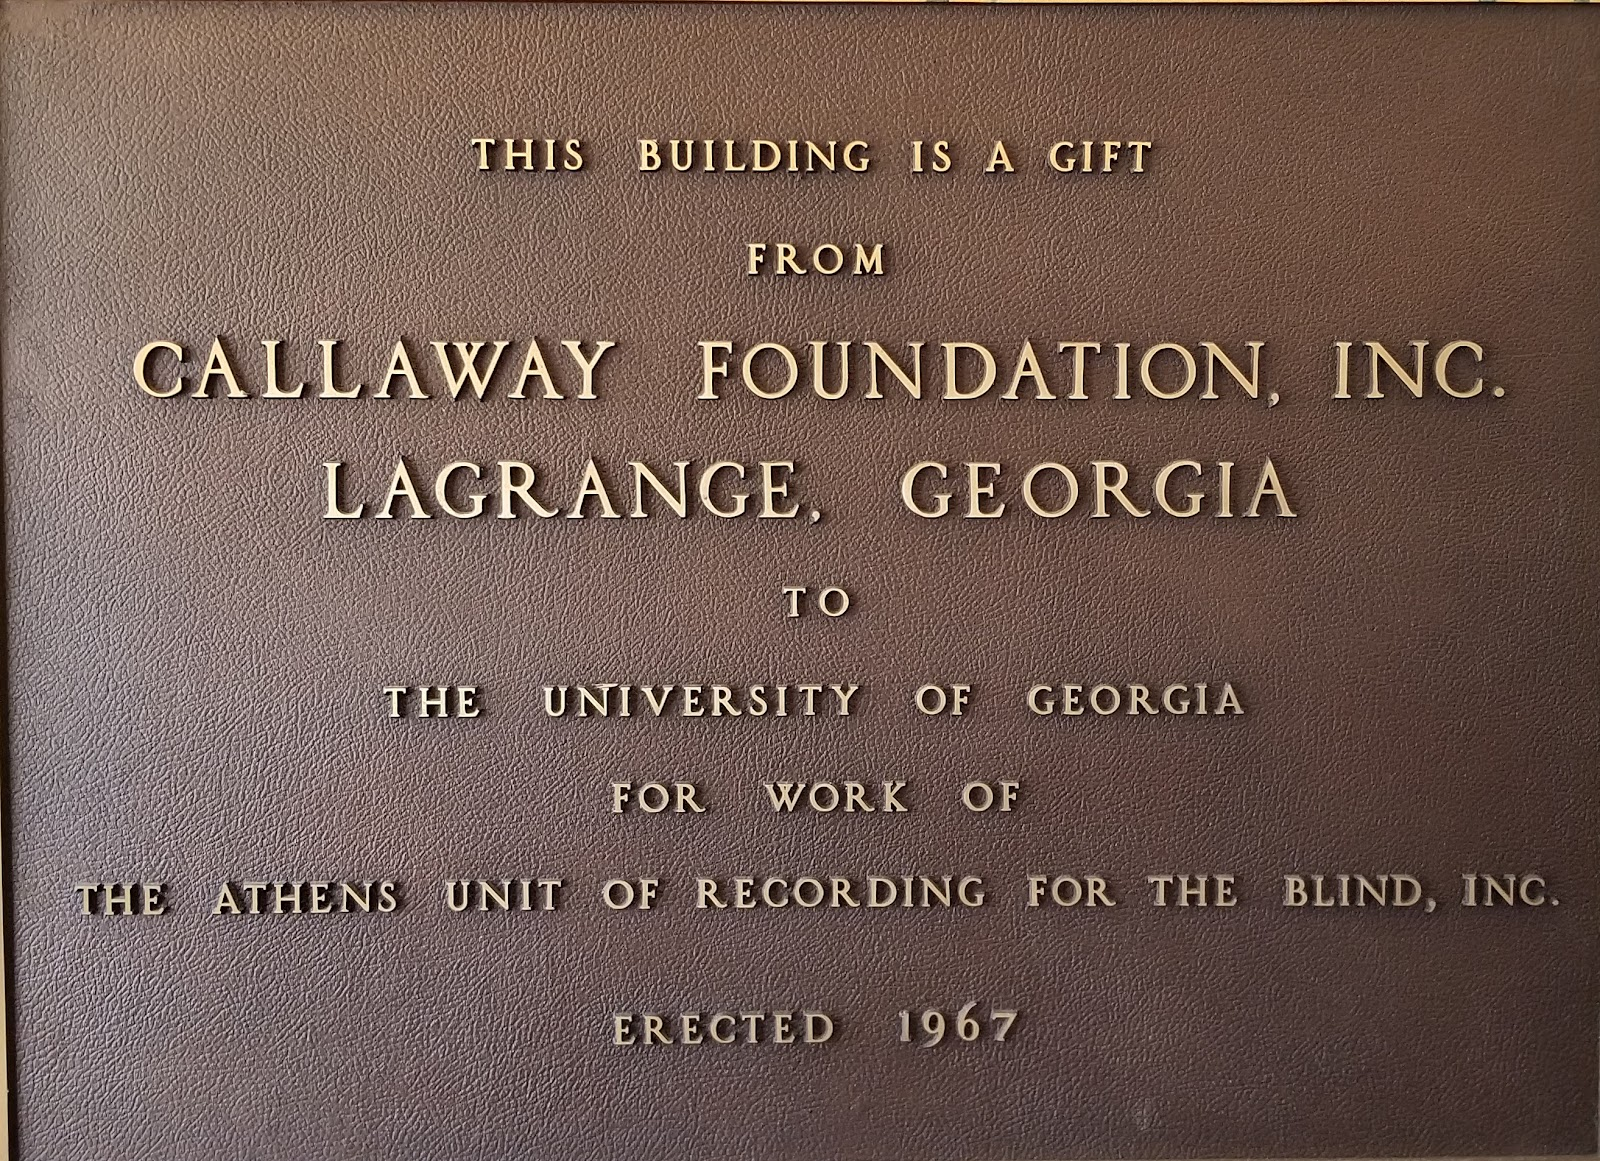 Plaque with text:  This building is a gift from Callaway Foundation, Inc. LaGrange, Georgia  to the University of Georgia for work of The Athens Unit of Recording for the Blind, Inc. Erected 1967.